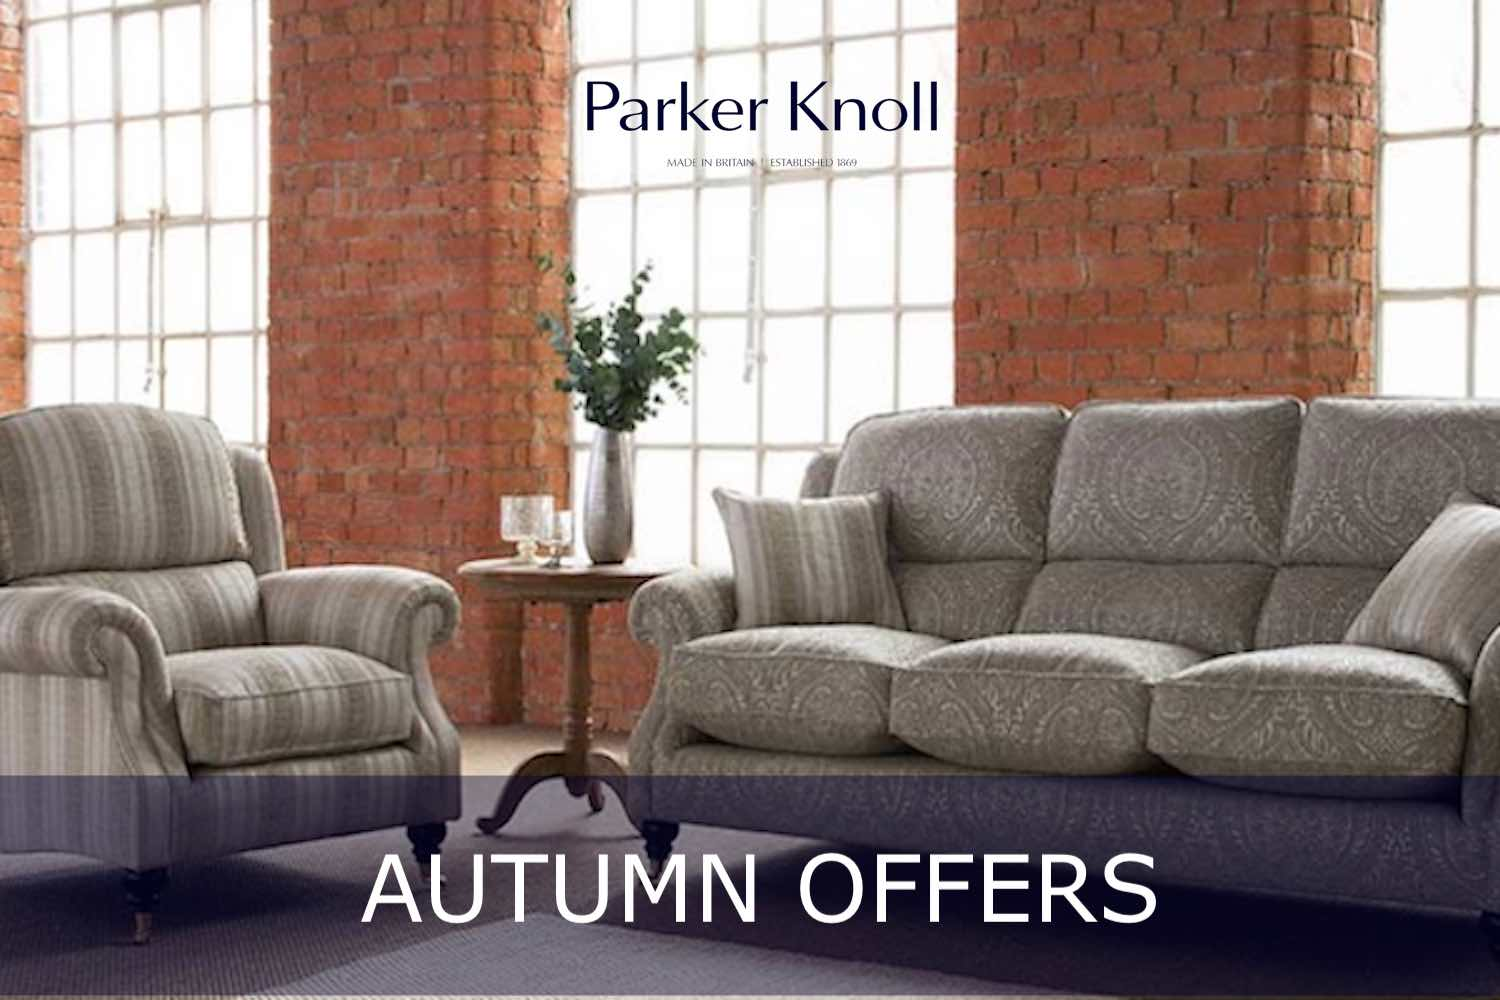 Parker Knoll autumn offers